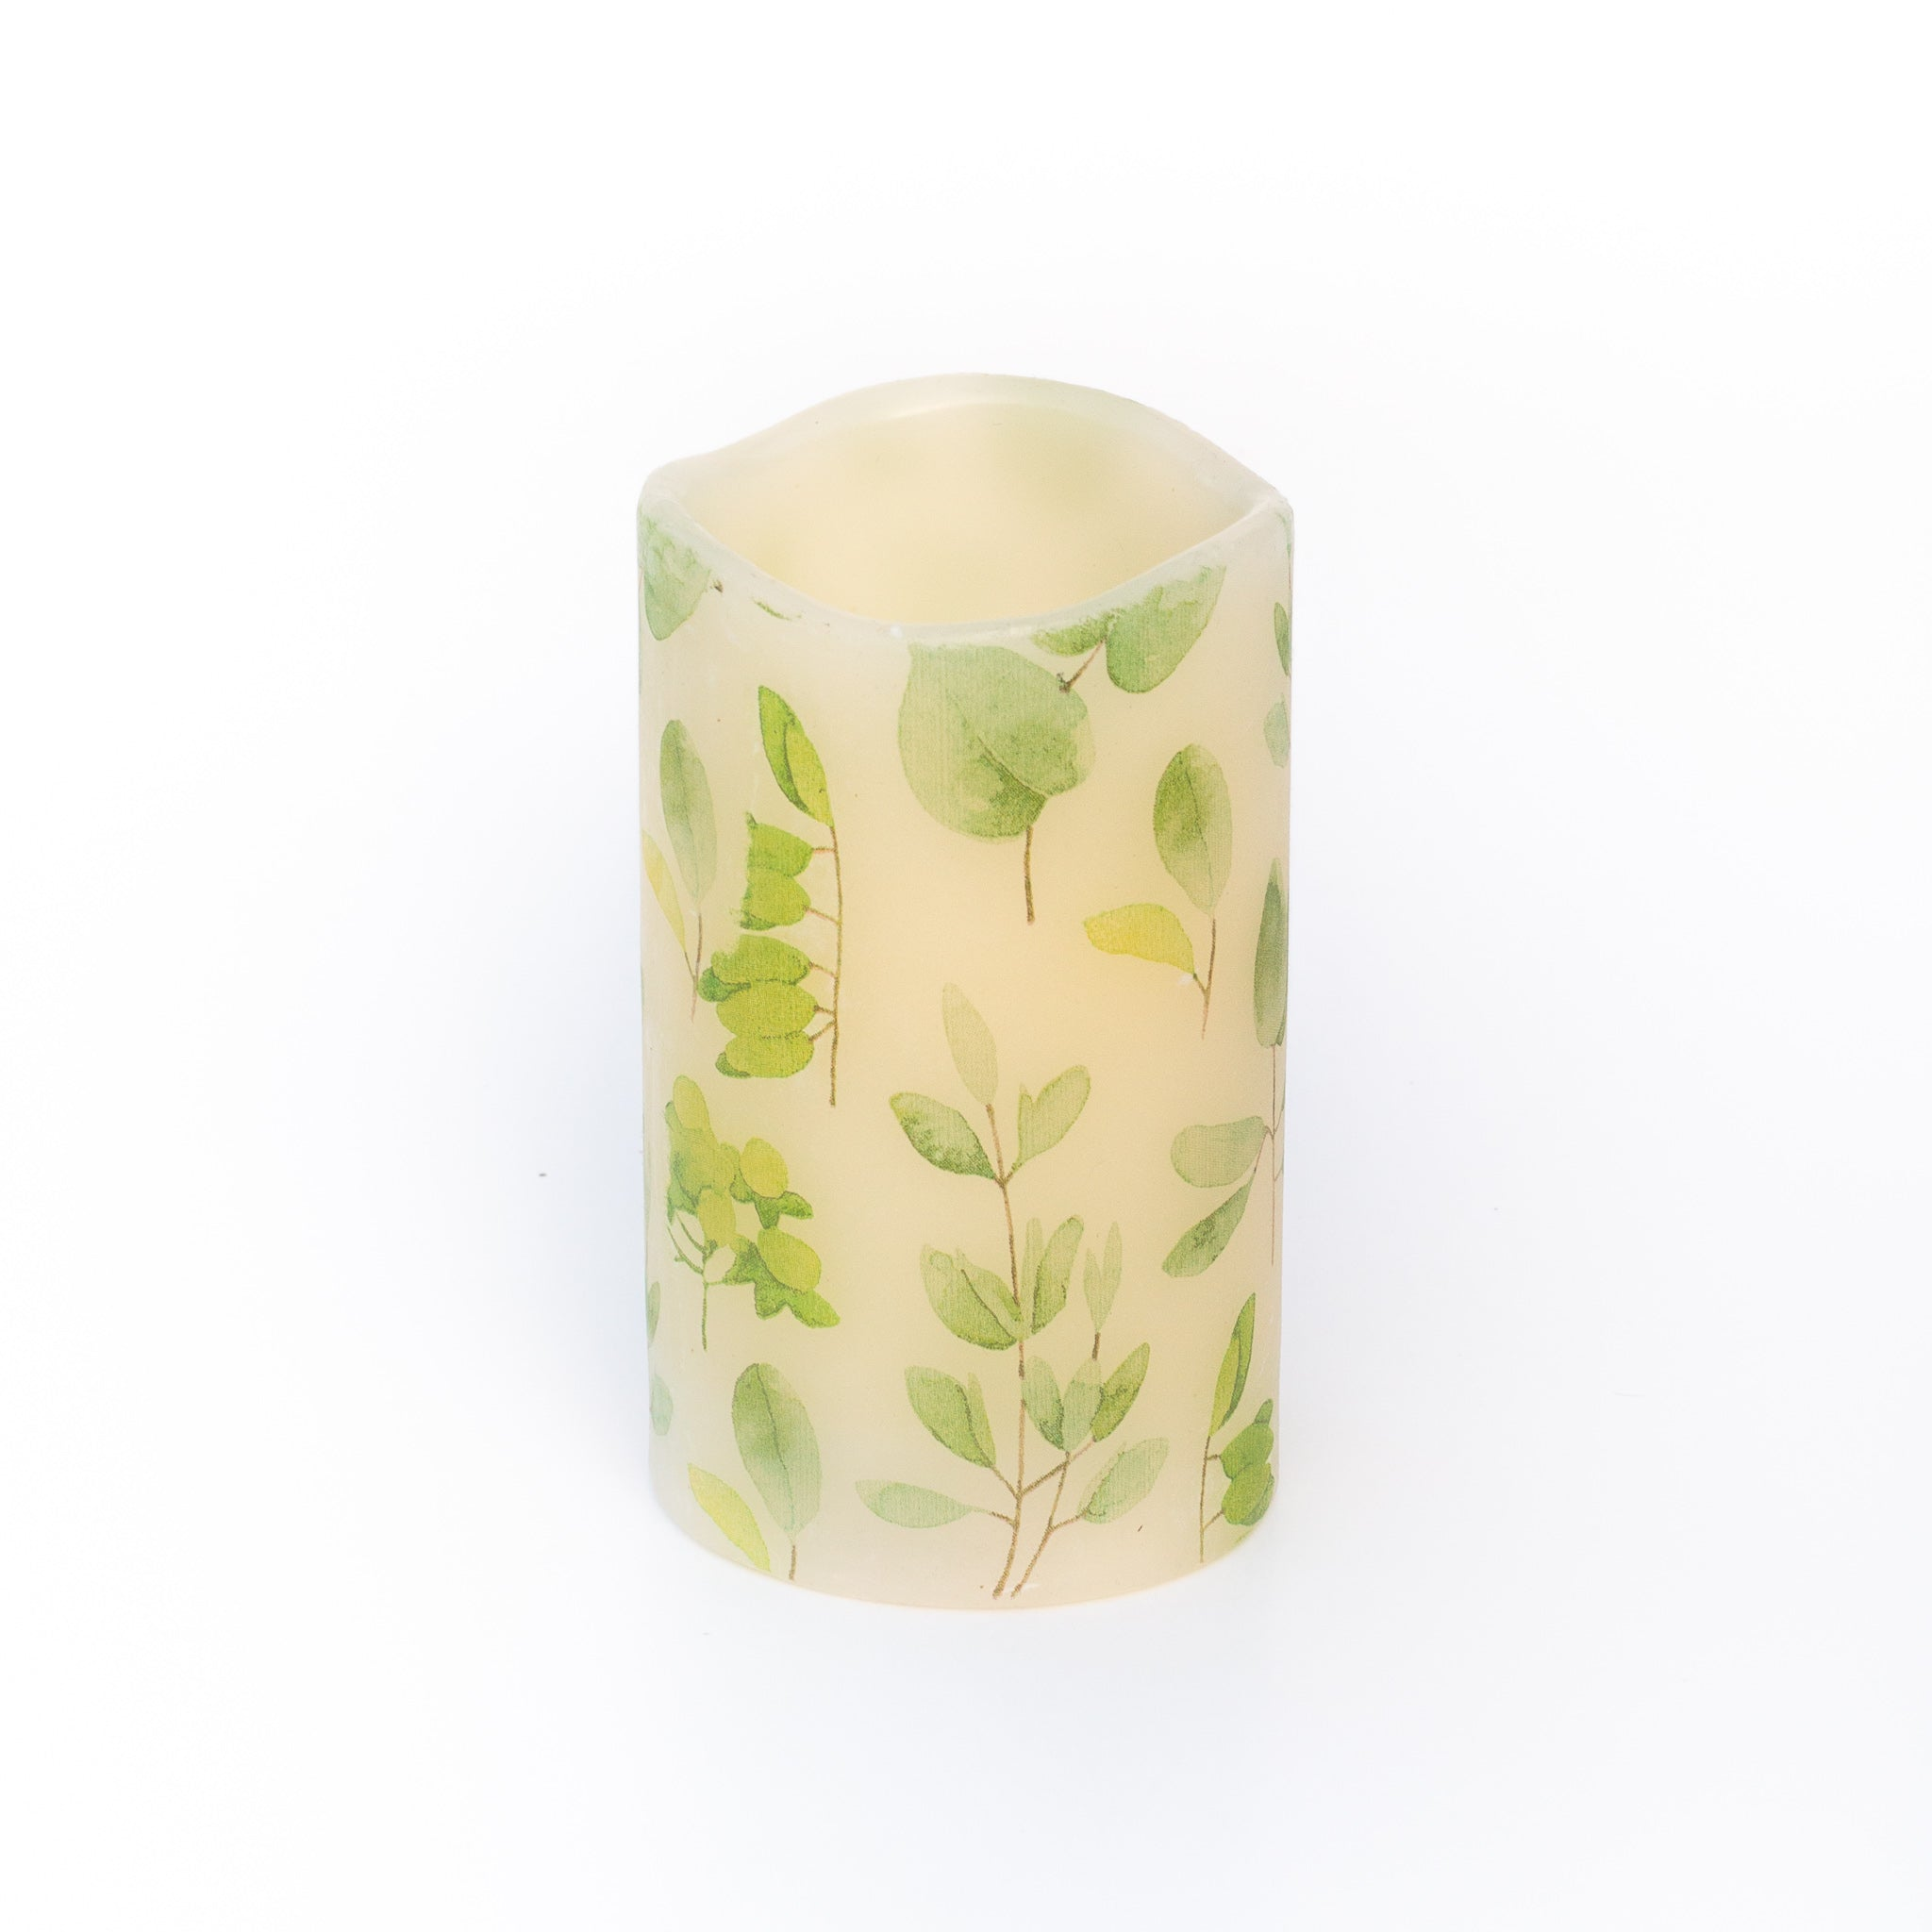 Handcrafted Unscented Candles - Unique Nature Lovers Gift